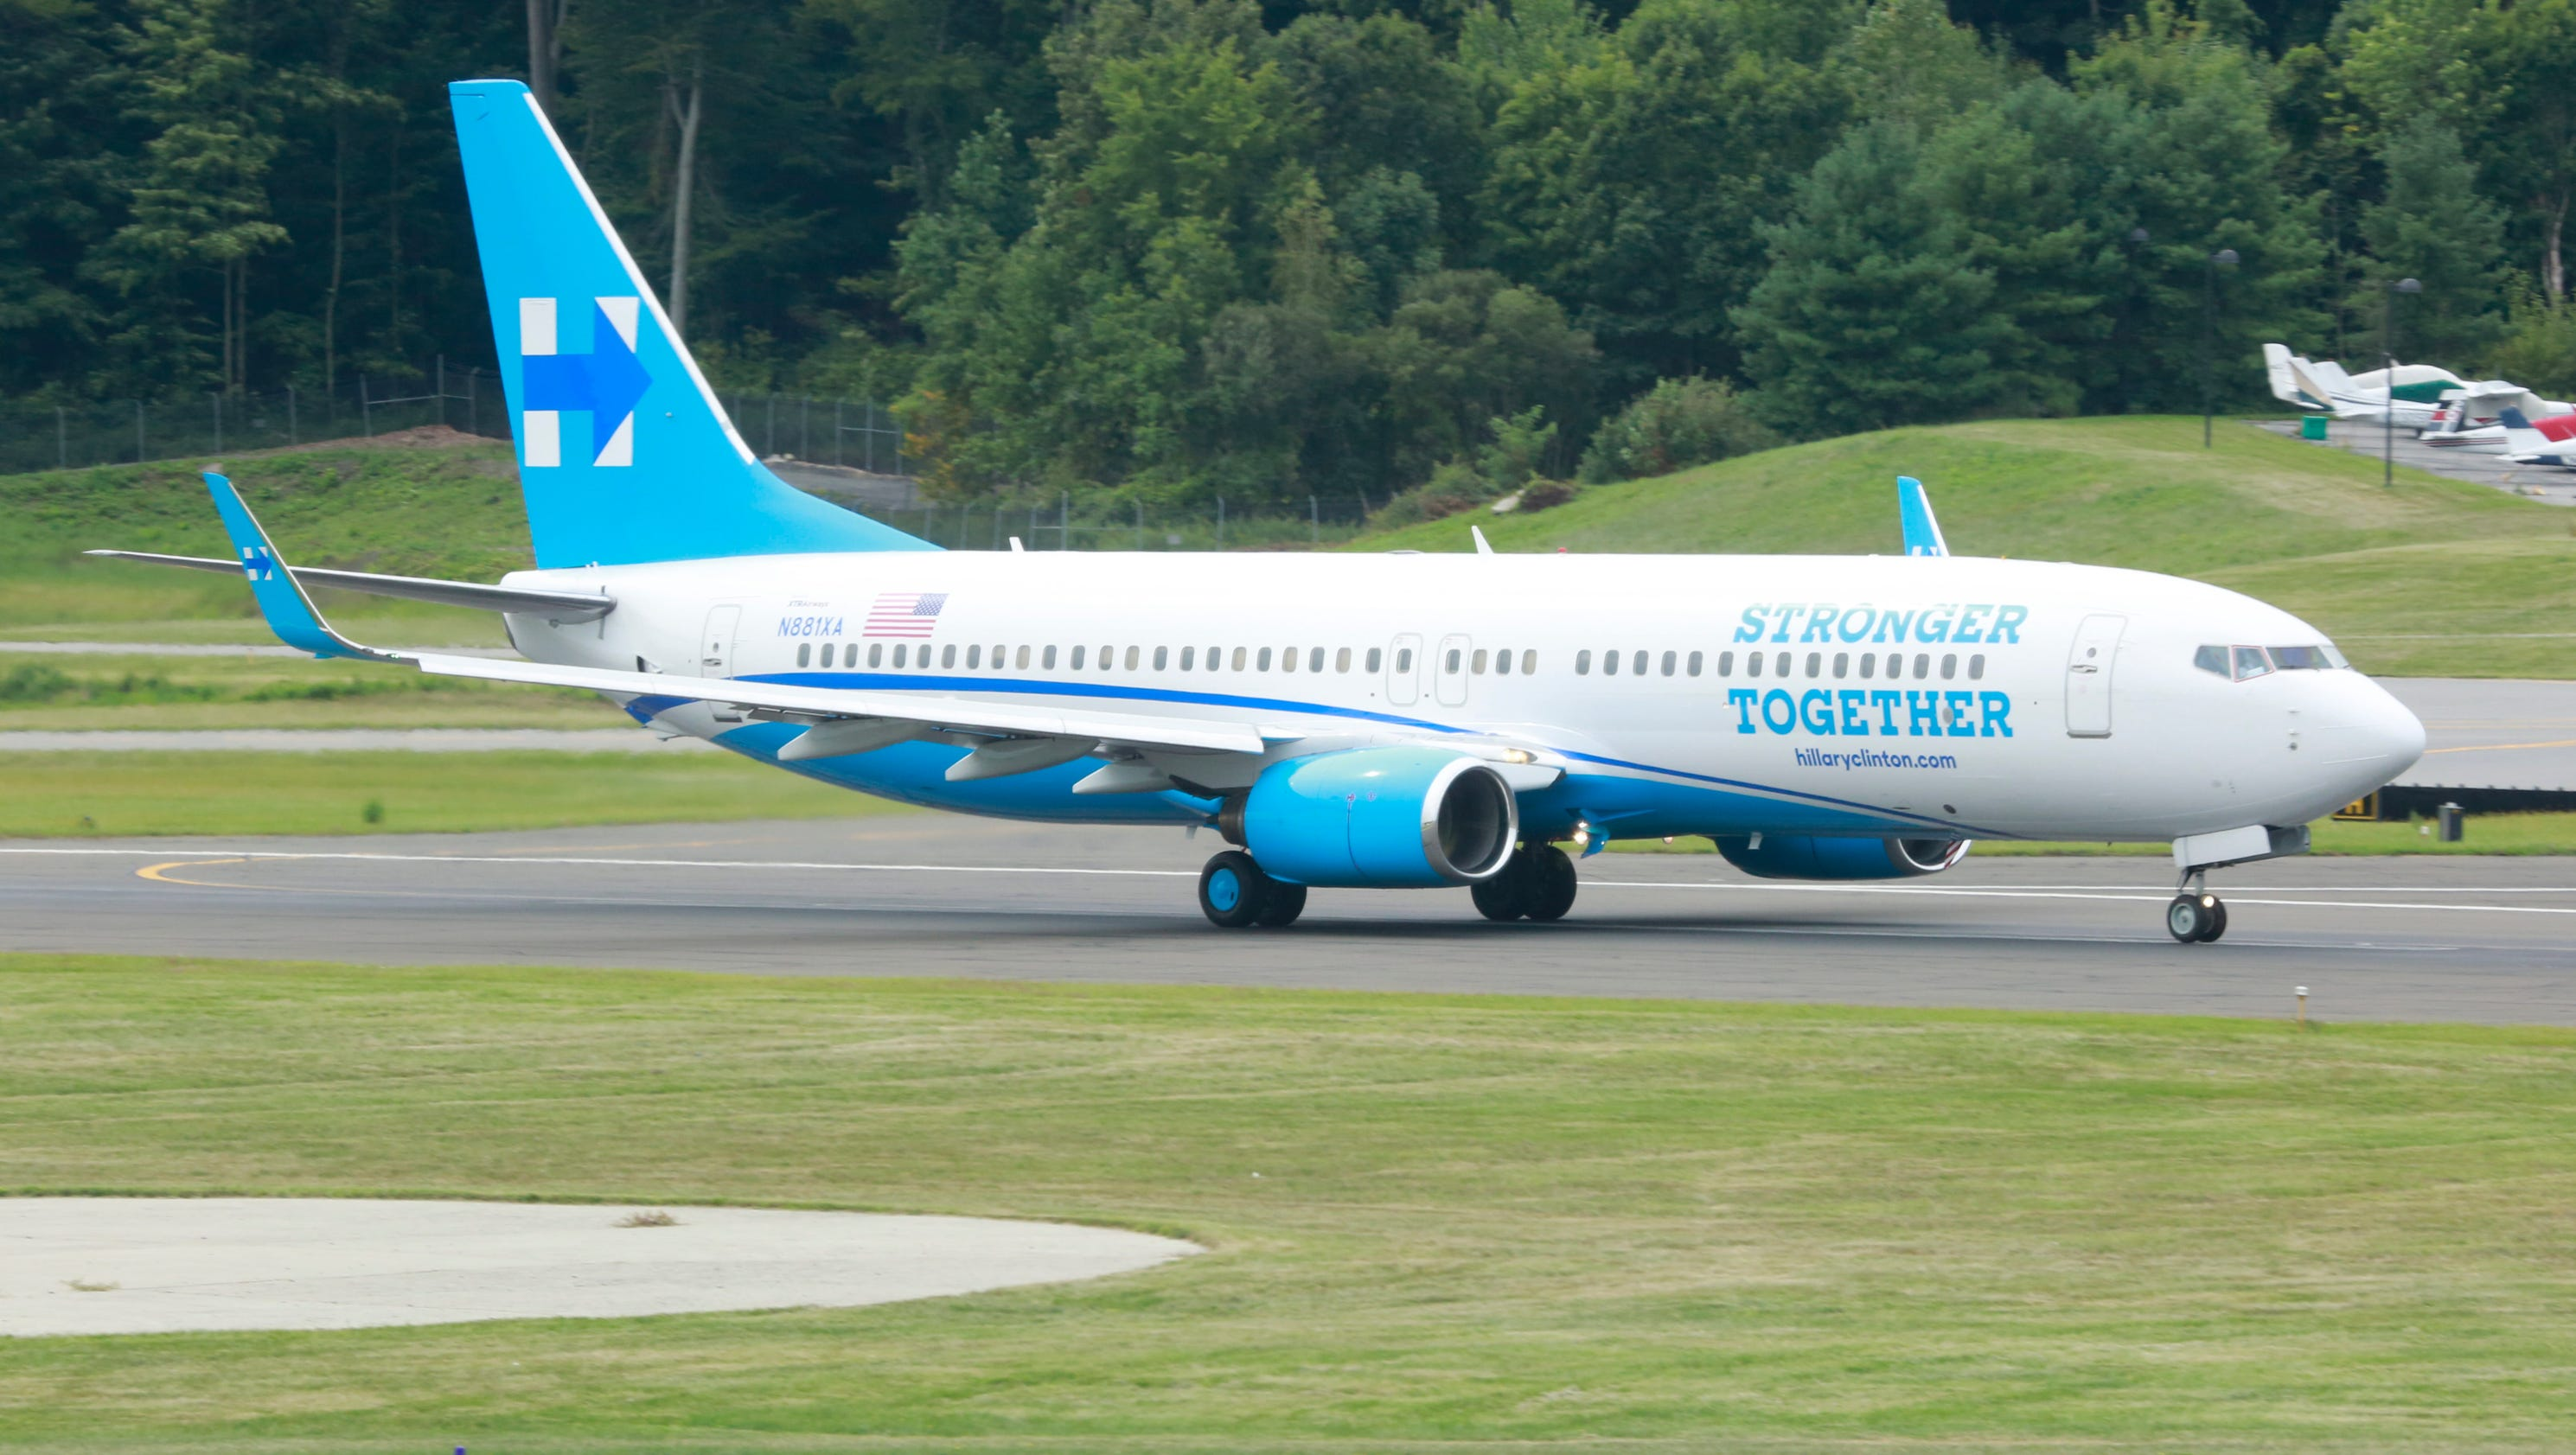 Hillary clinton 39 s new campaign plane debuts in westchester for Airplane plan